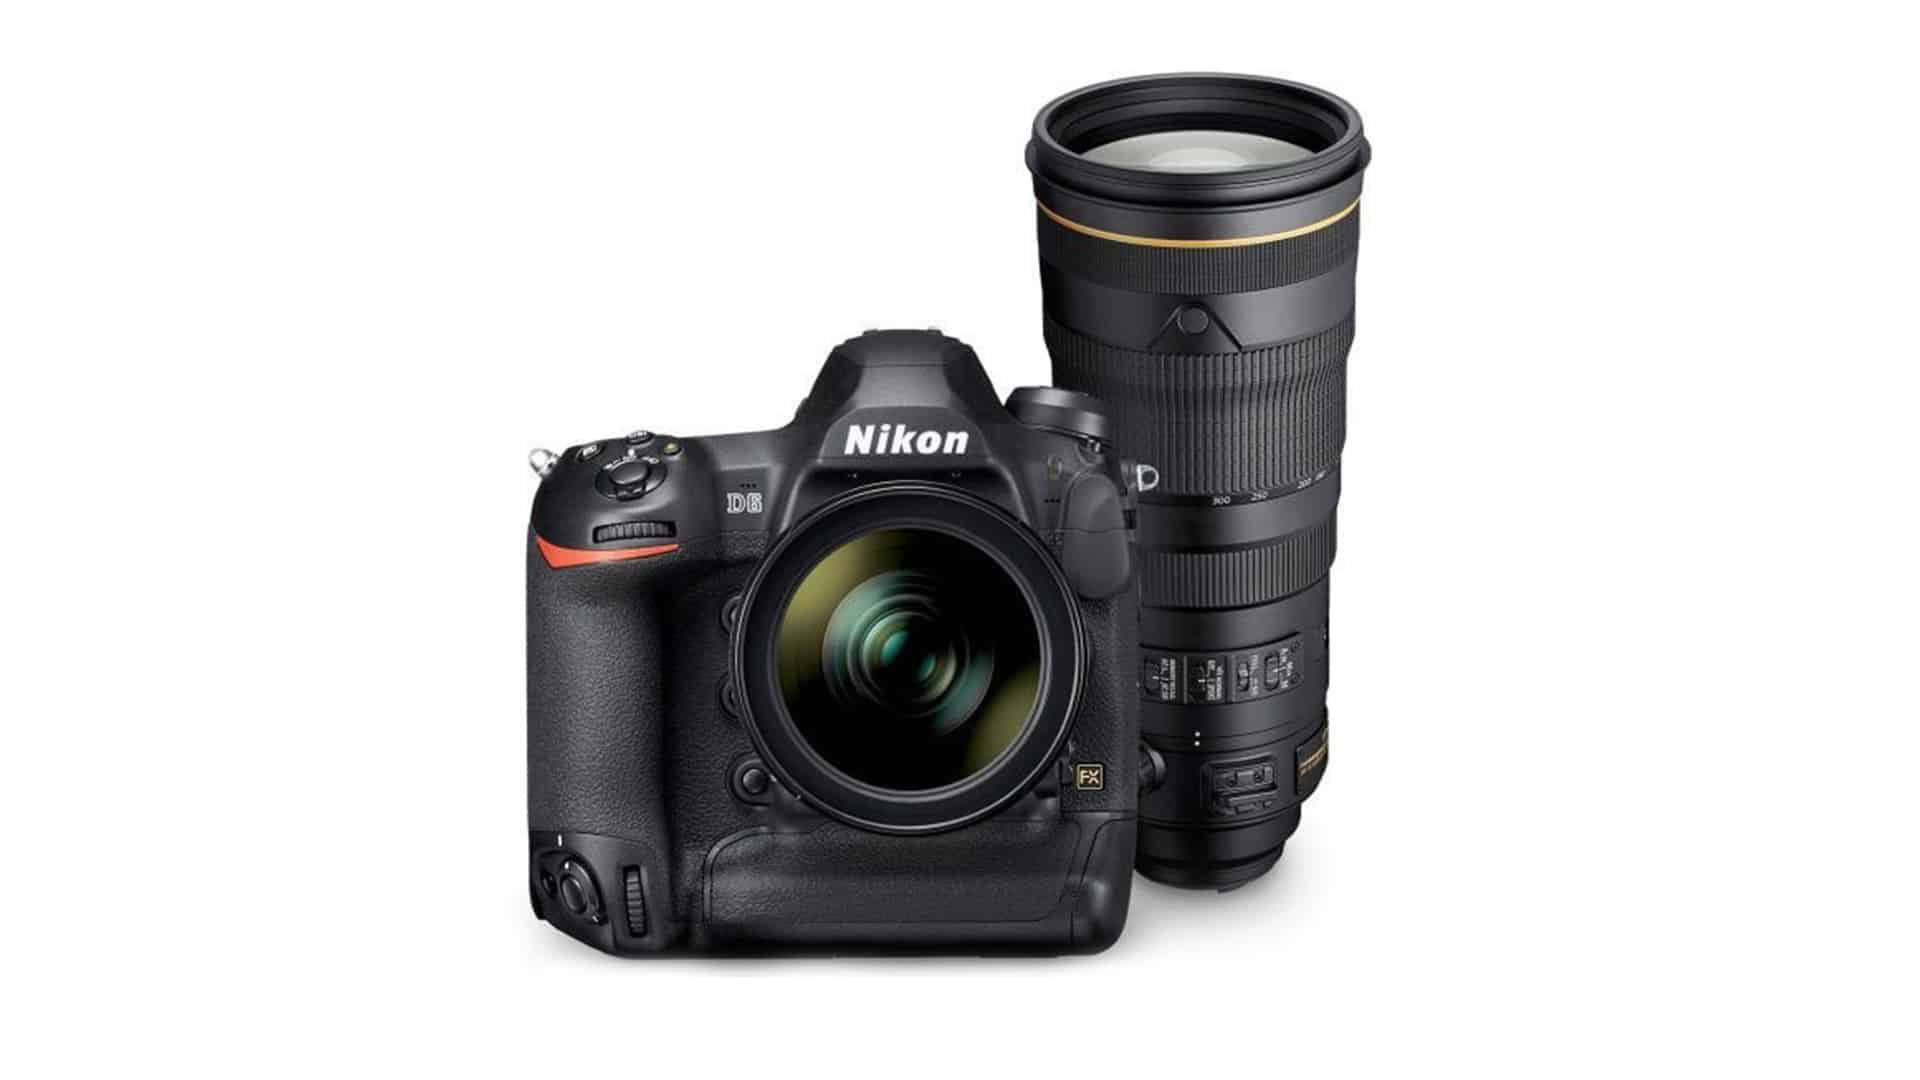 Nikon D6 DSLR, the most advanced digital SLR finally announced